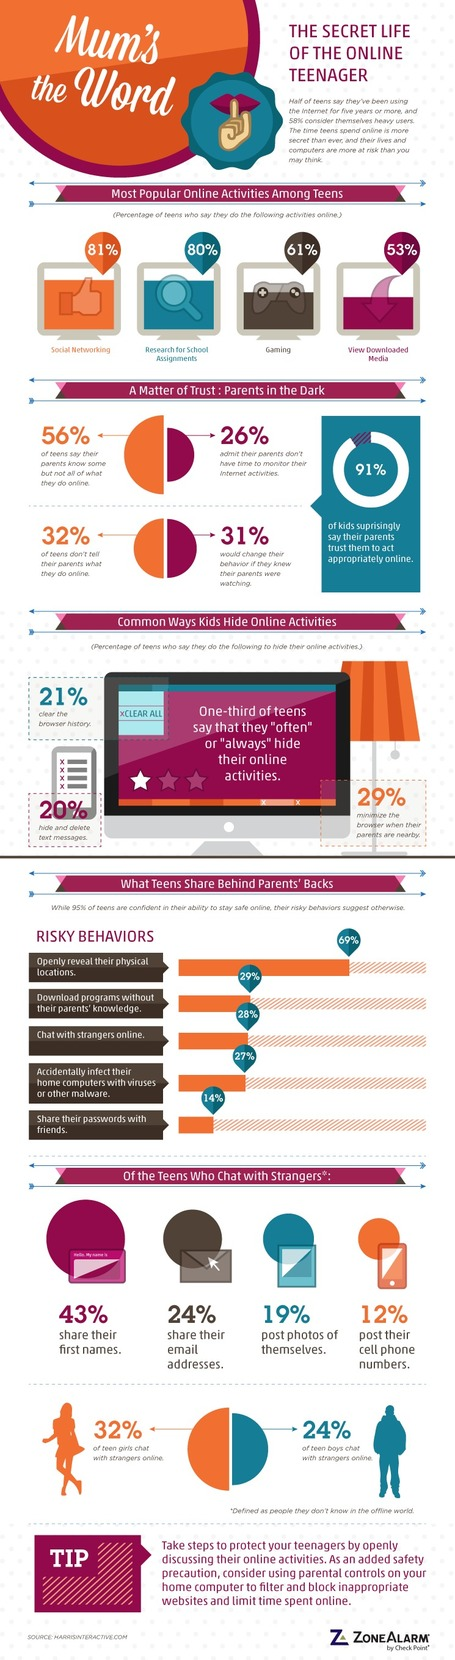 The Secret Online Life Of Teenagers [Infographic] | Leveraging Information | Scoop.it